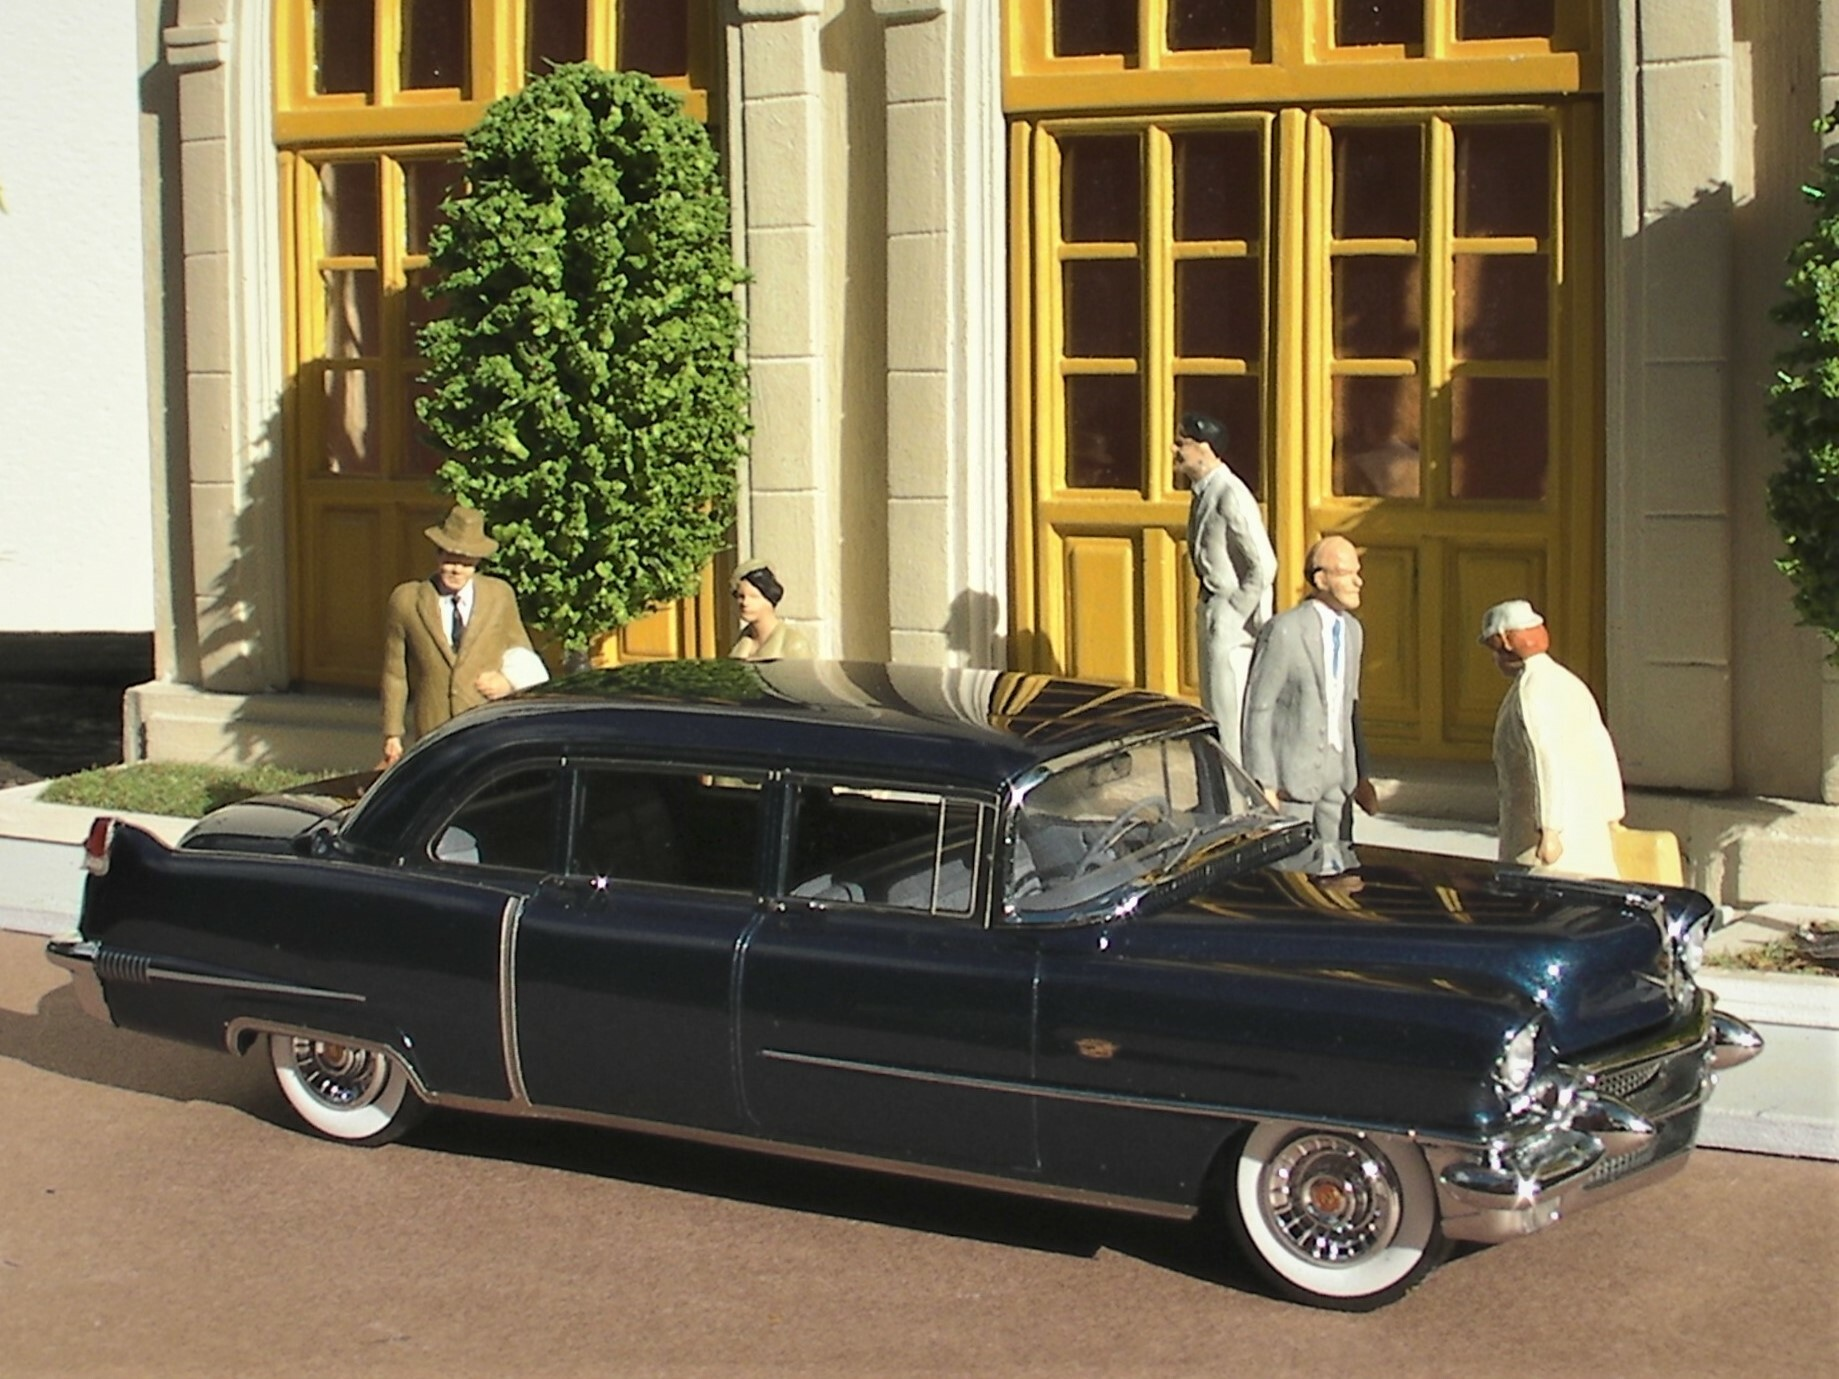 Cadillac 56 Serries 75 Fleetwood Limousine (3)